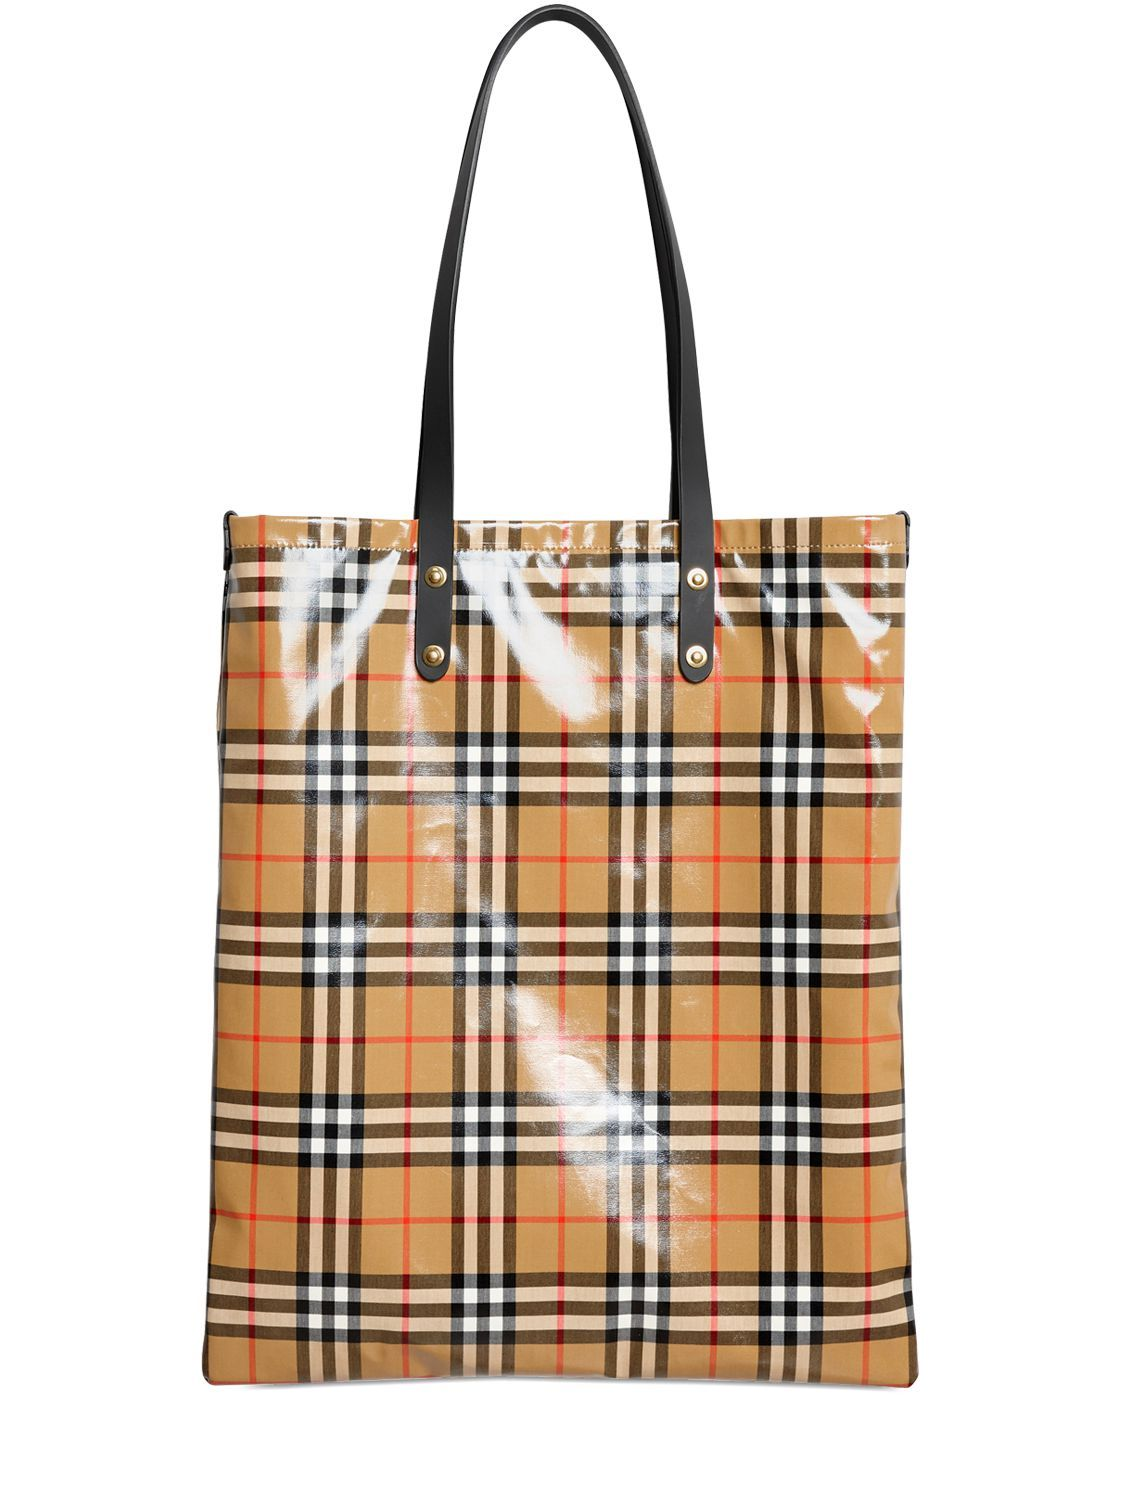 570cd93950af BURBERRY RUNWAY FW18 COATED CHECK CANVAS TOTE BAG.  burberry  bags  leather   hand bags  canvas  lace  tote